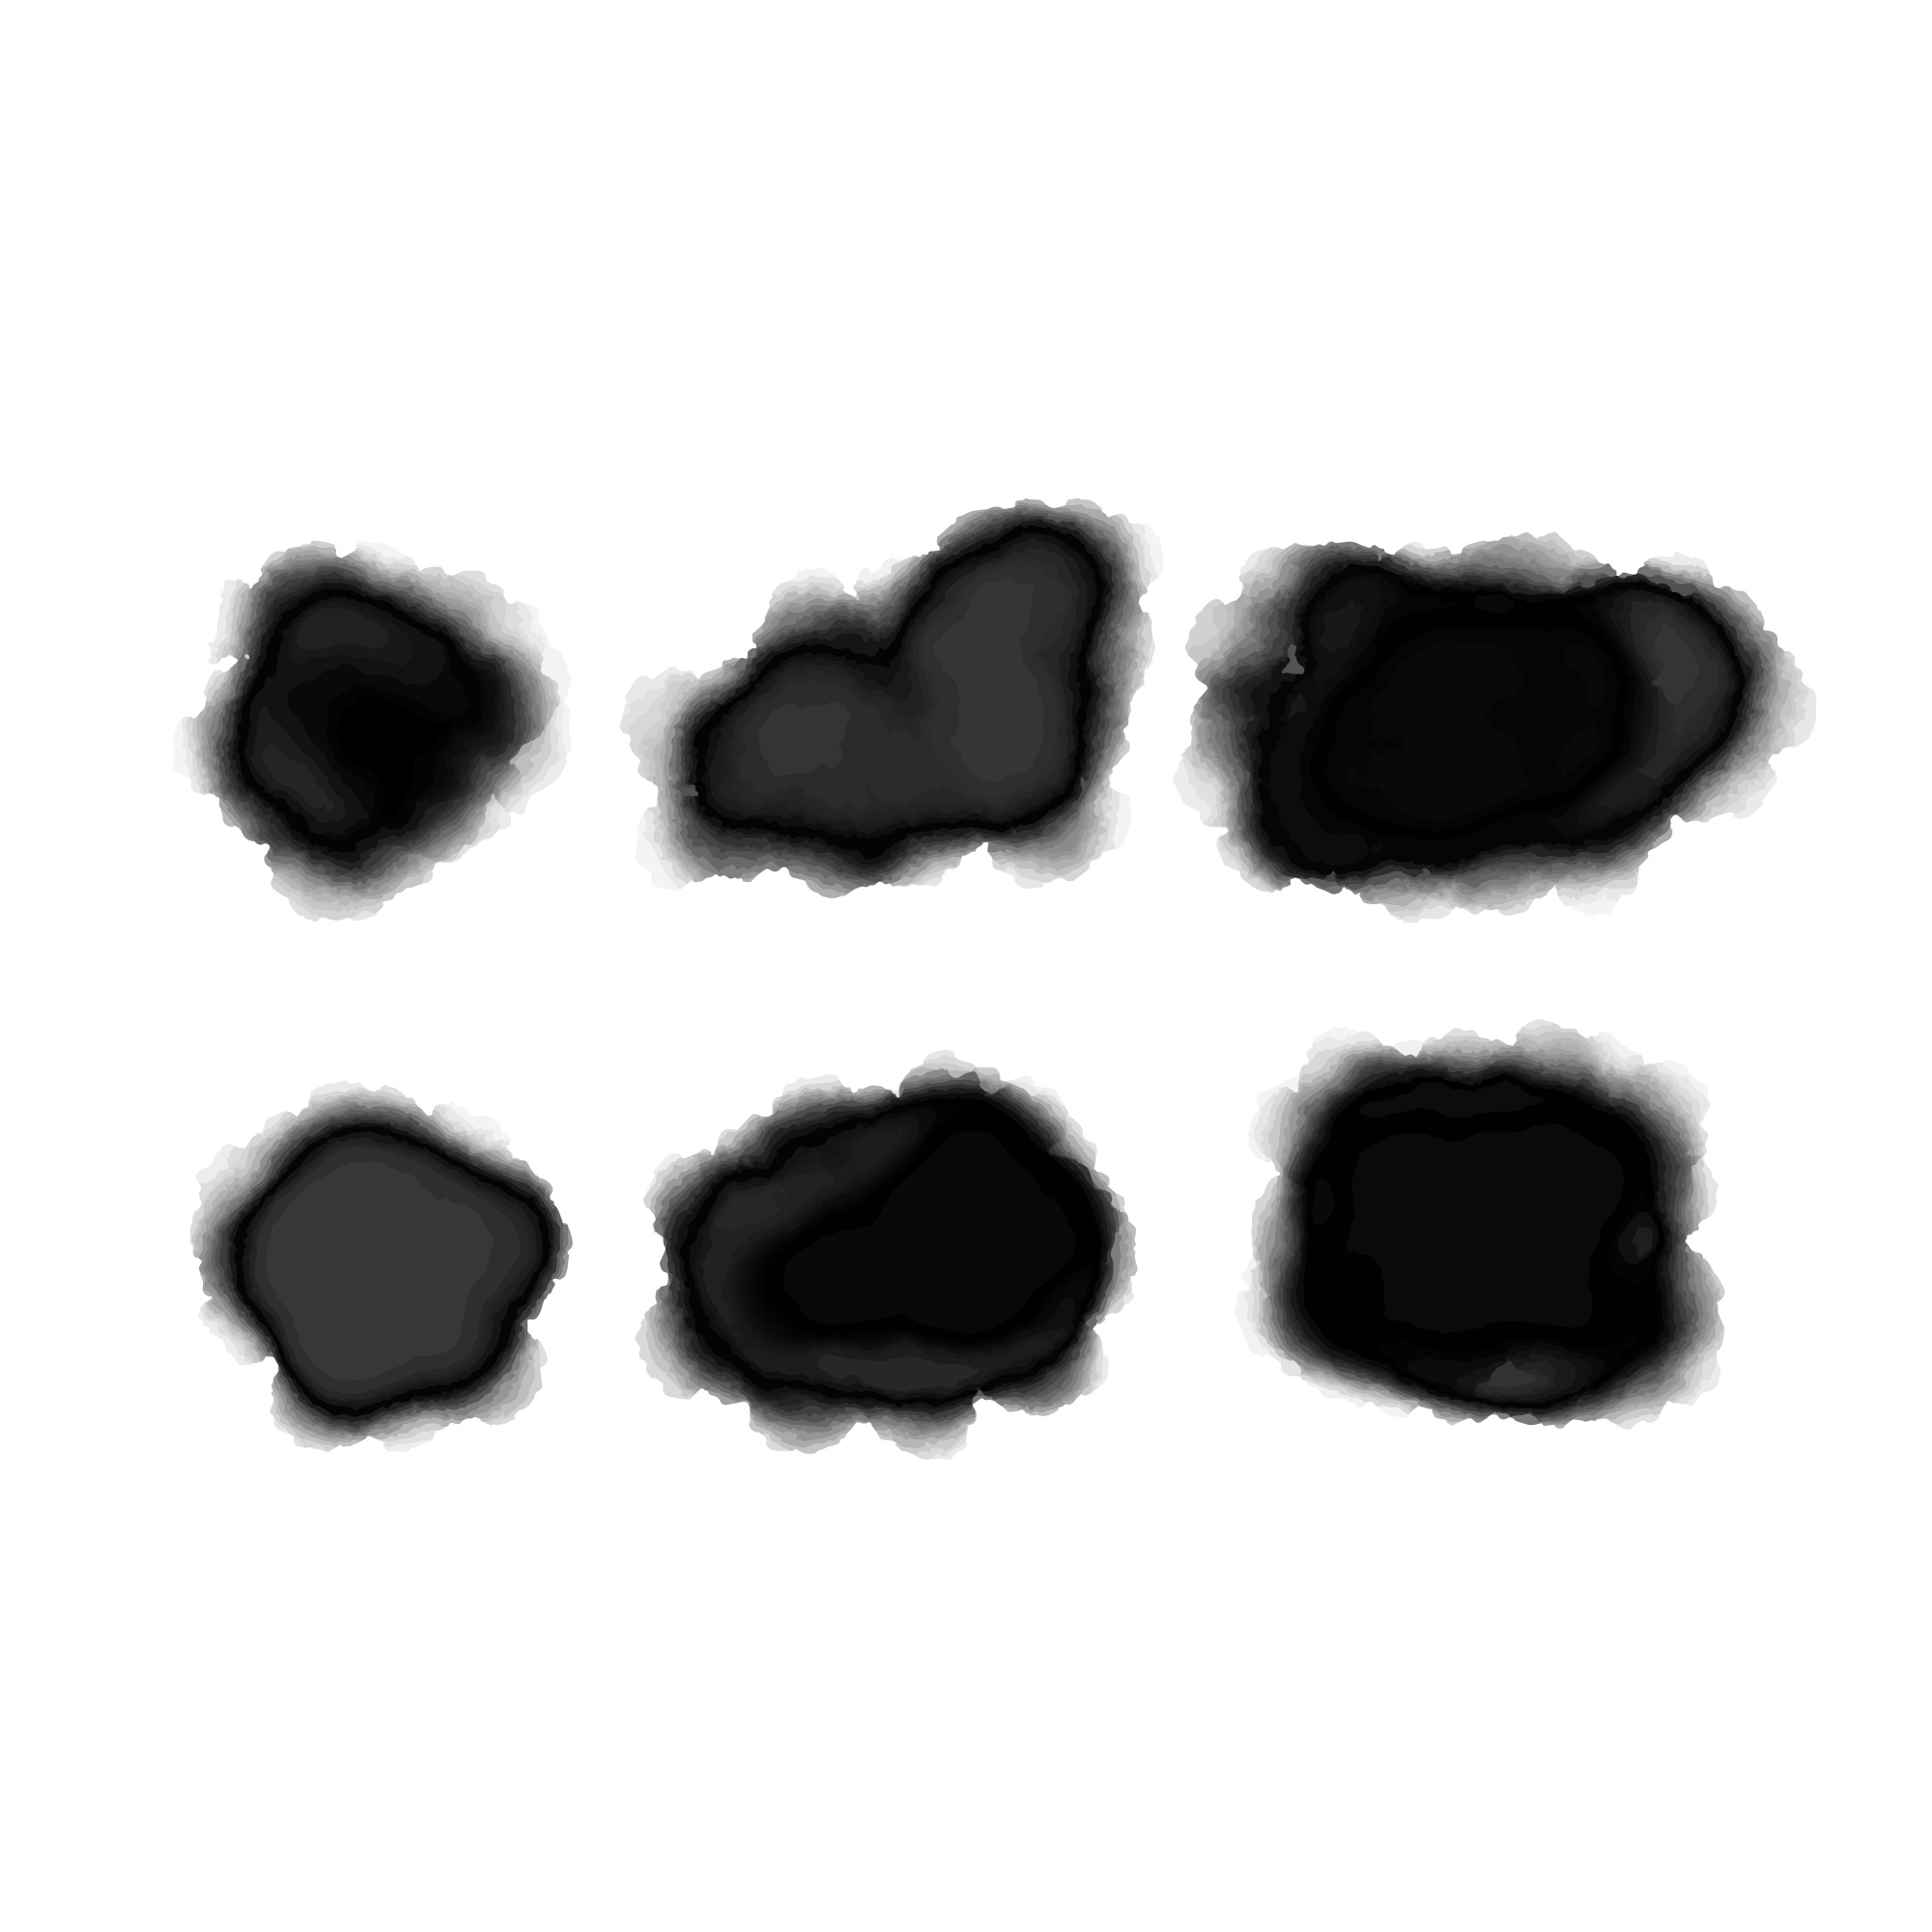 Black watercolor stain collection